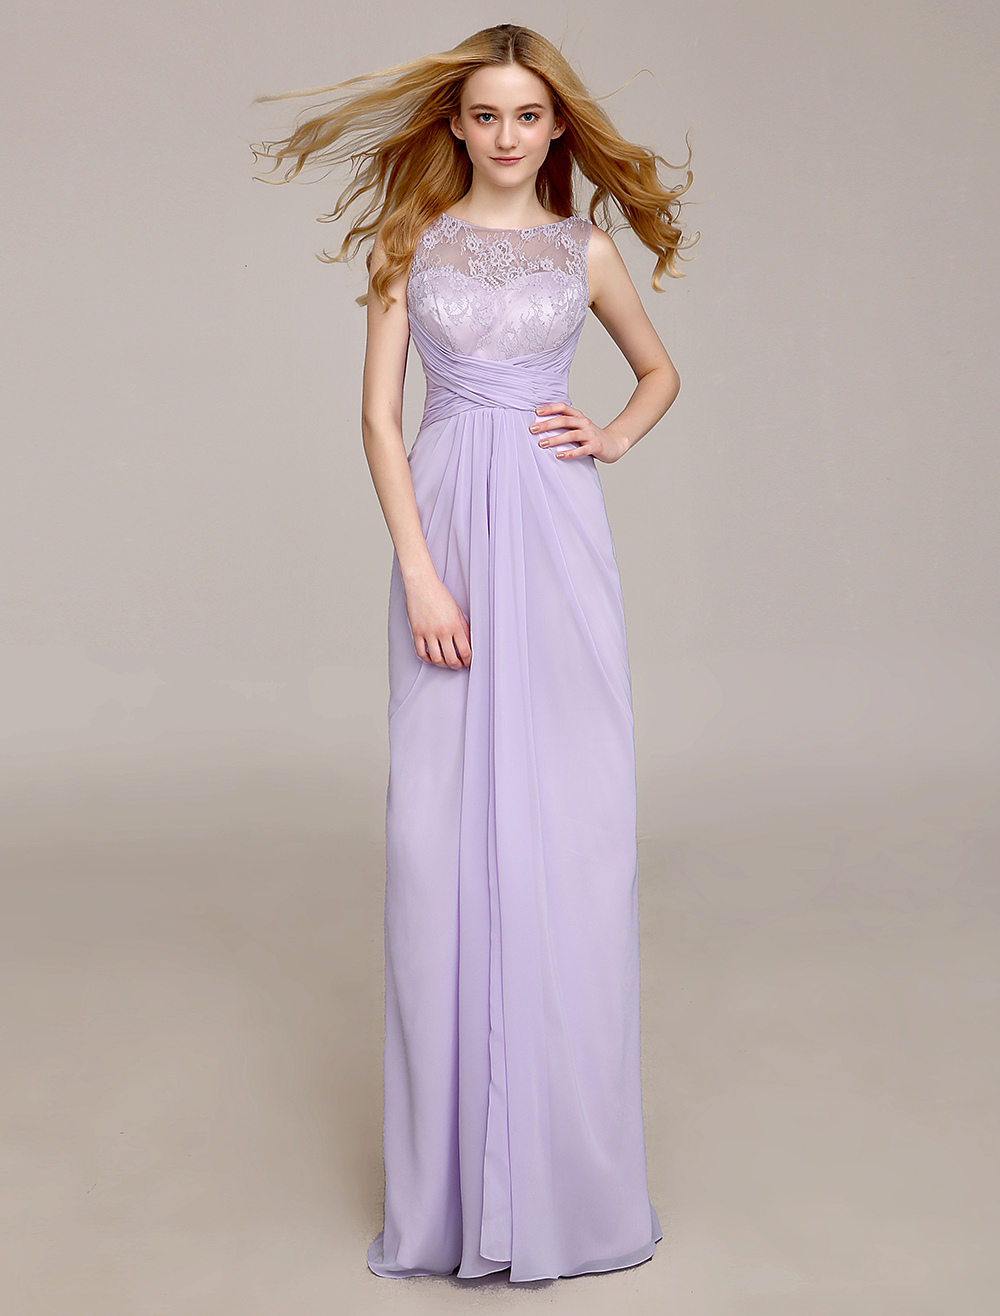 Jewel Neck Bridesmaid Dress With Draped Sheath Milanoo